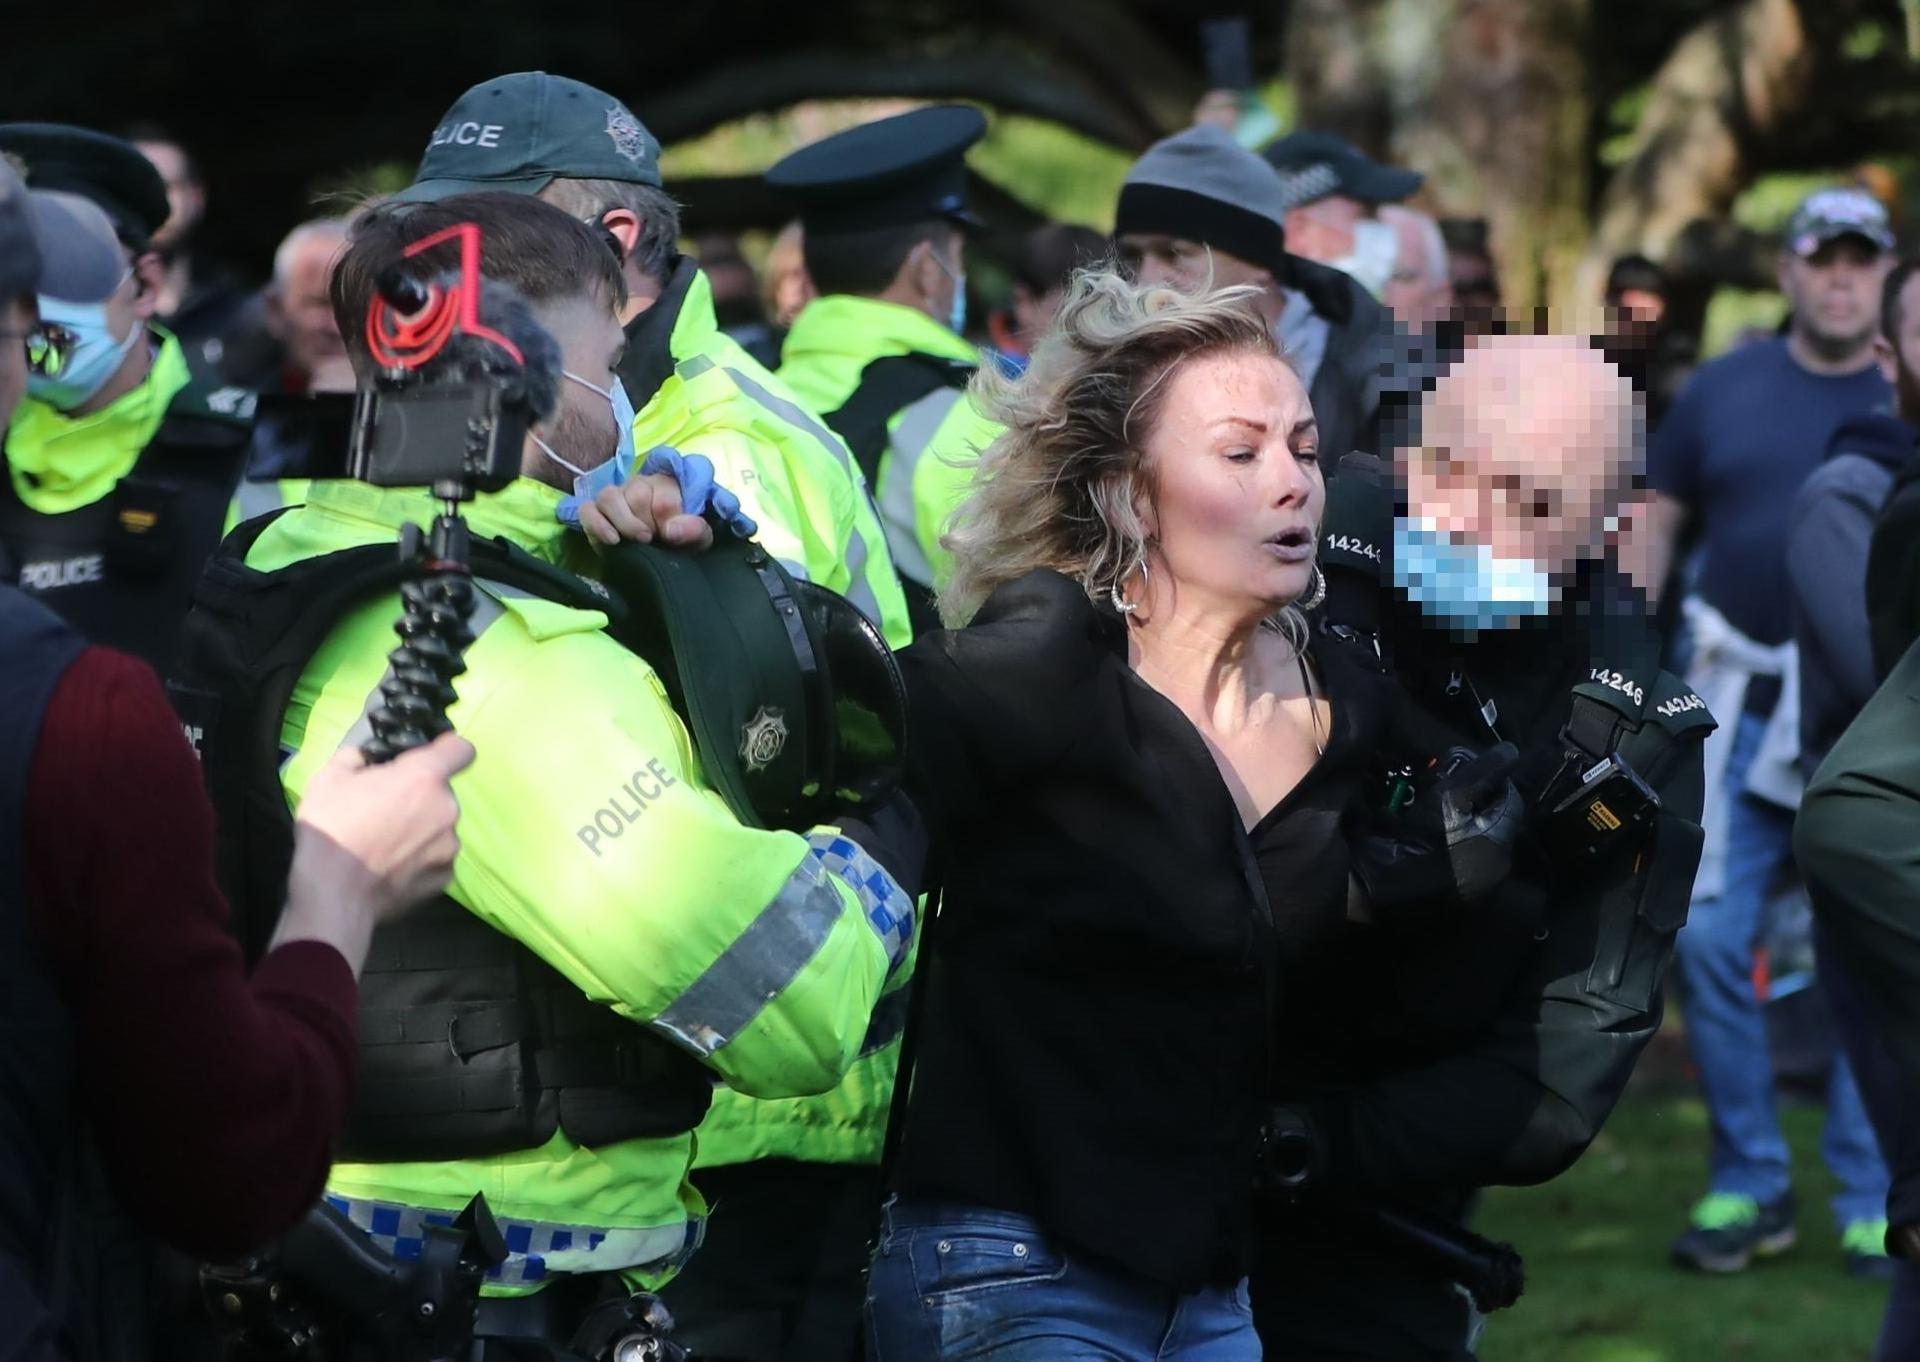 LIVE UPDATES: Coronavirus NI - 'You absolute moron' - Armagh City Banbridge and Craigavon councillor in social media row with conspiracy theorist Jim Corr over Stormont protests on Sunday